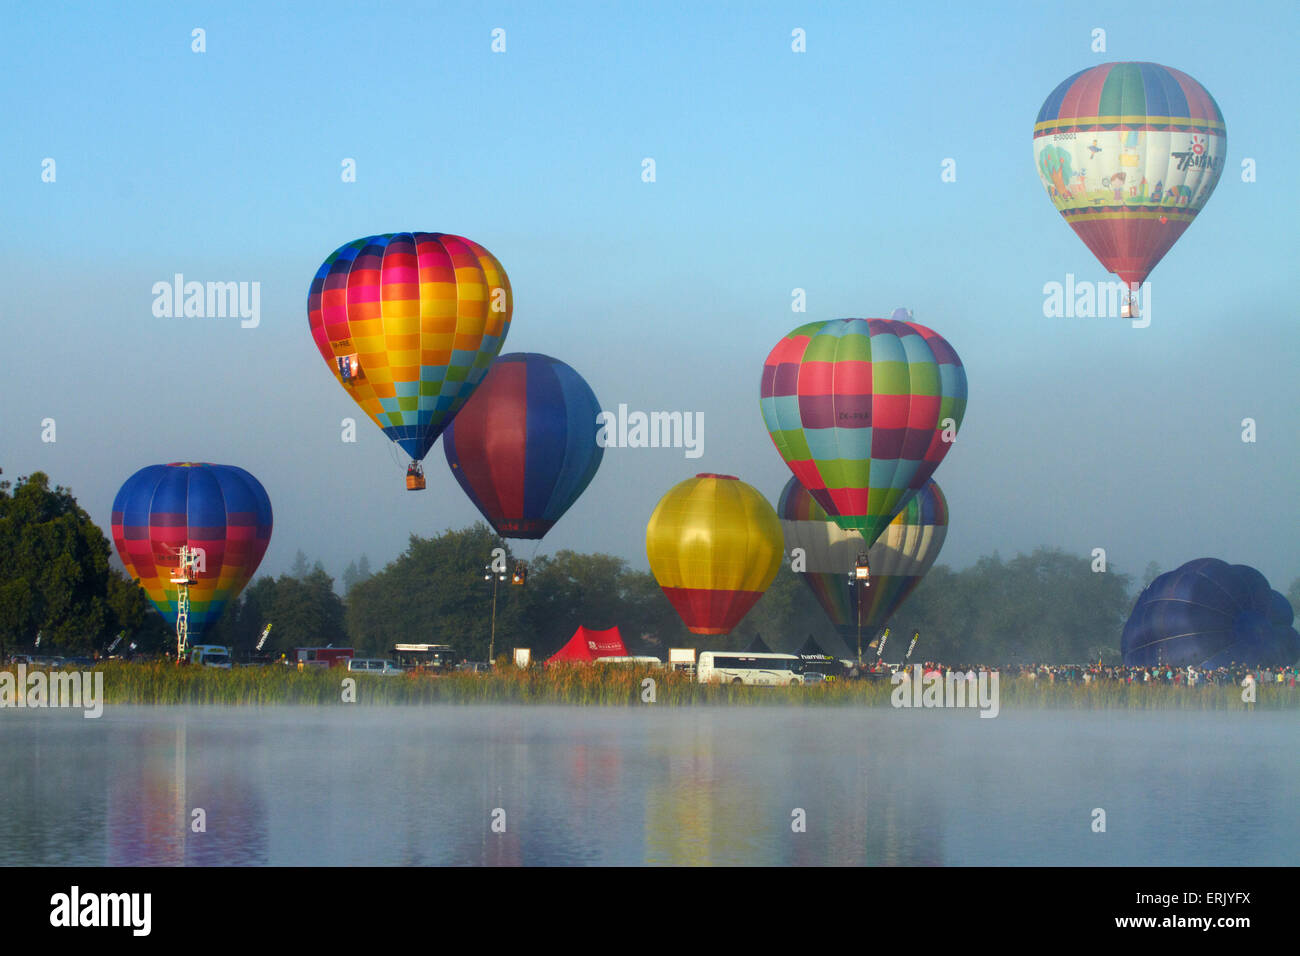 Hot air balloons, Balloons over Waikato Festival, Lake Rotoroa, Hamilton, Waikato, North Island, New Zealand - Stock Image